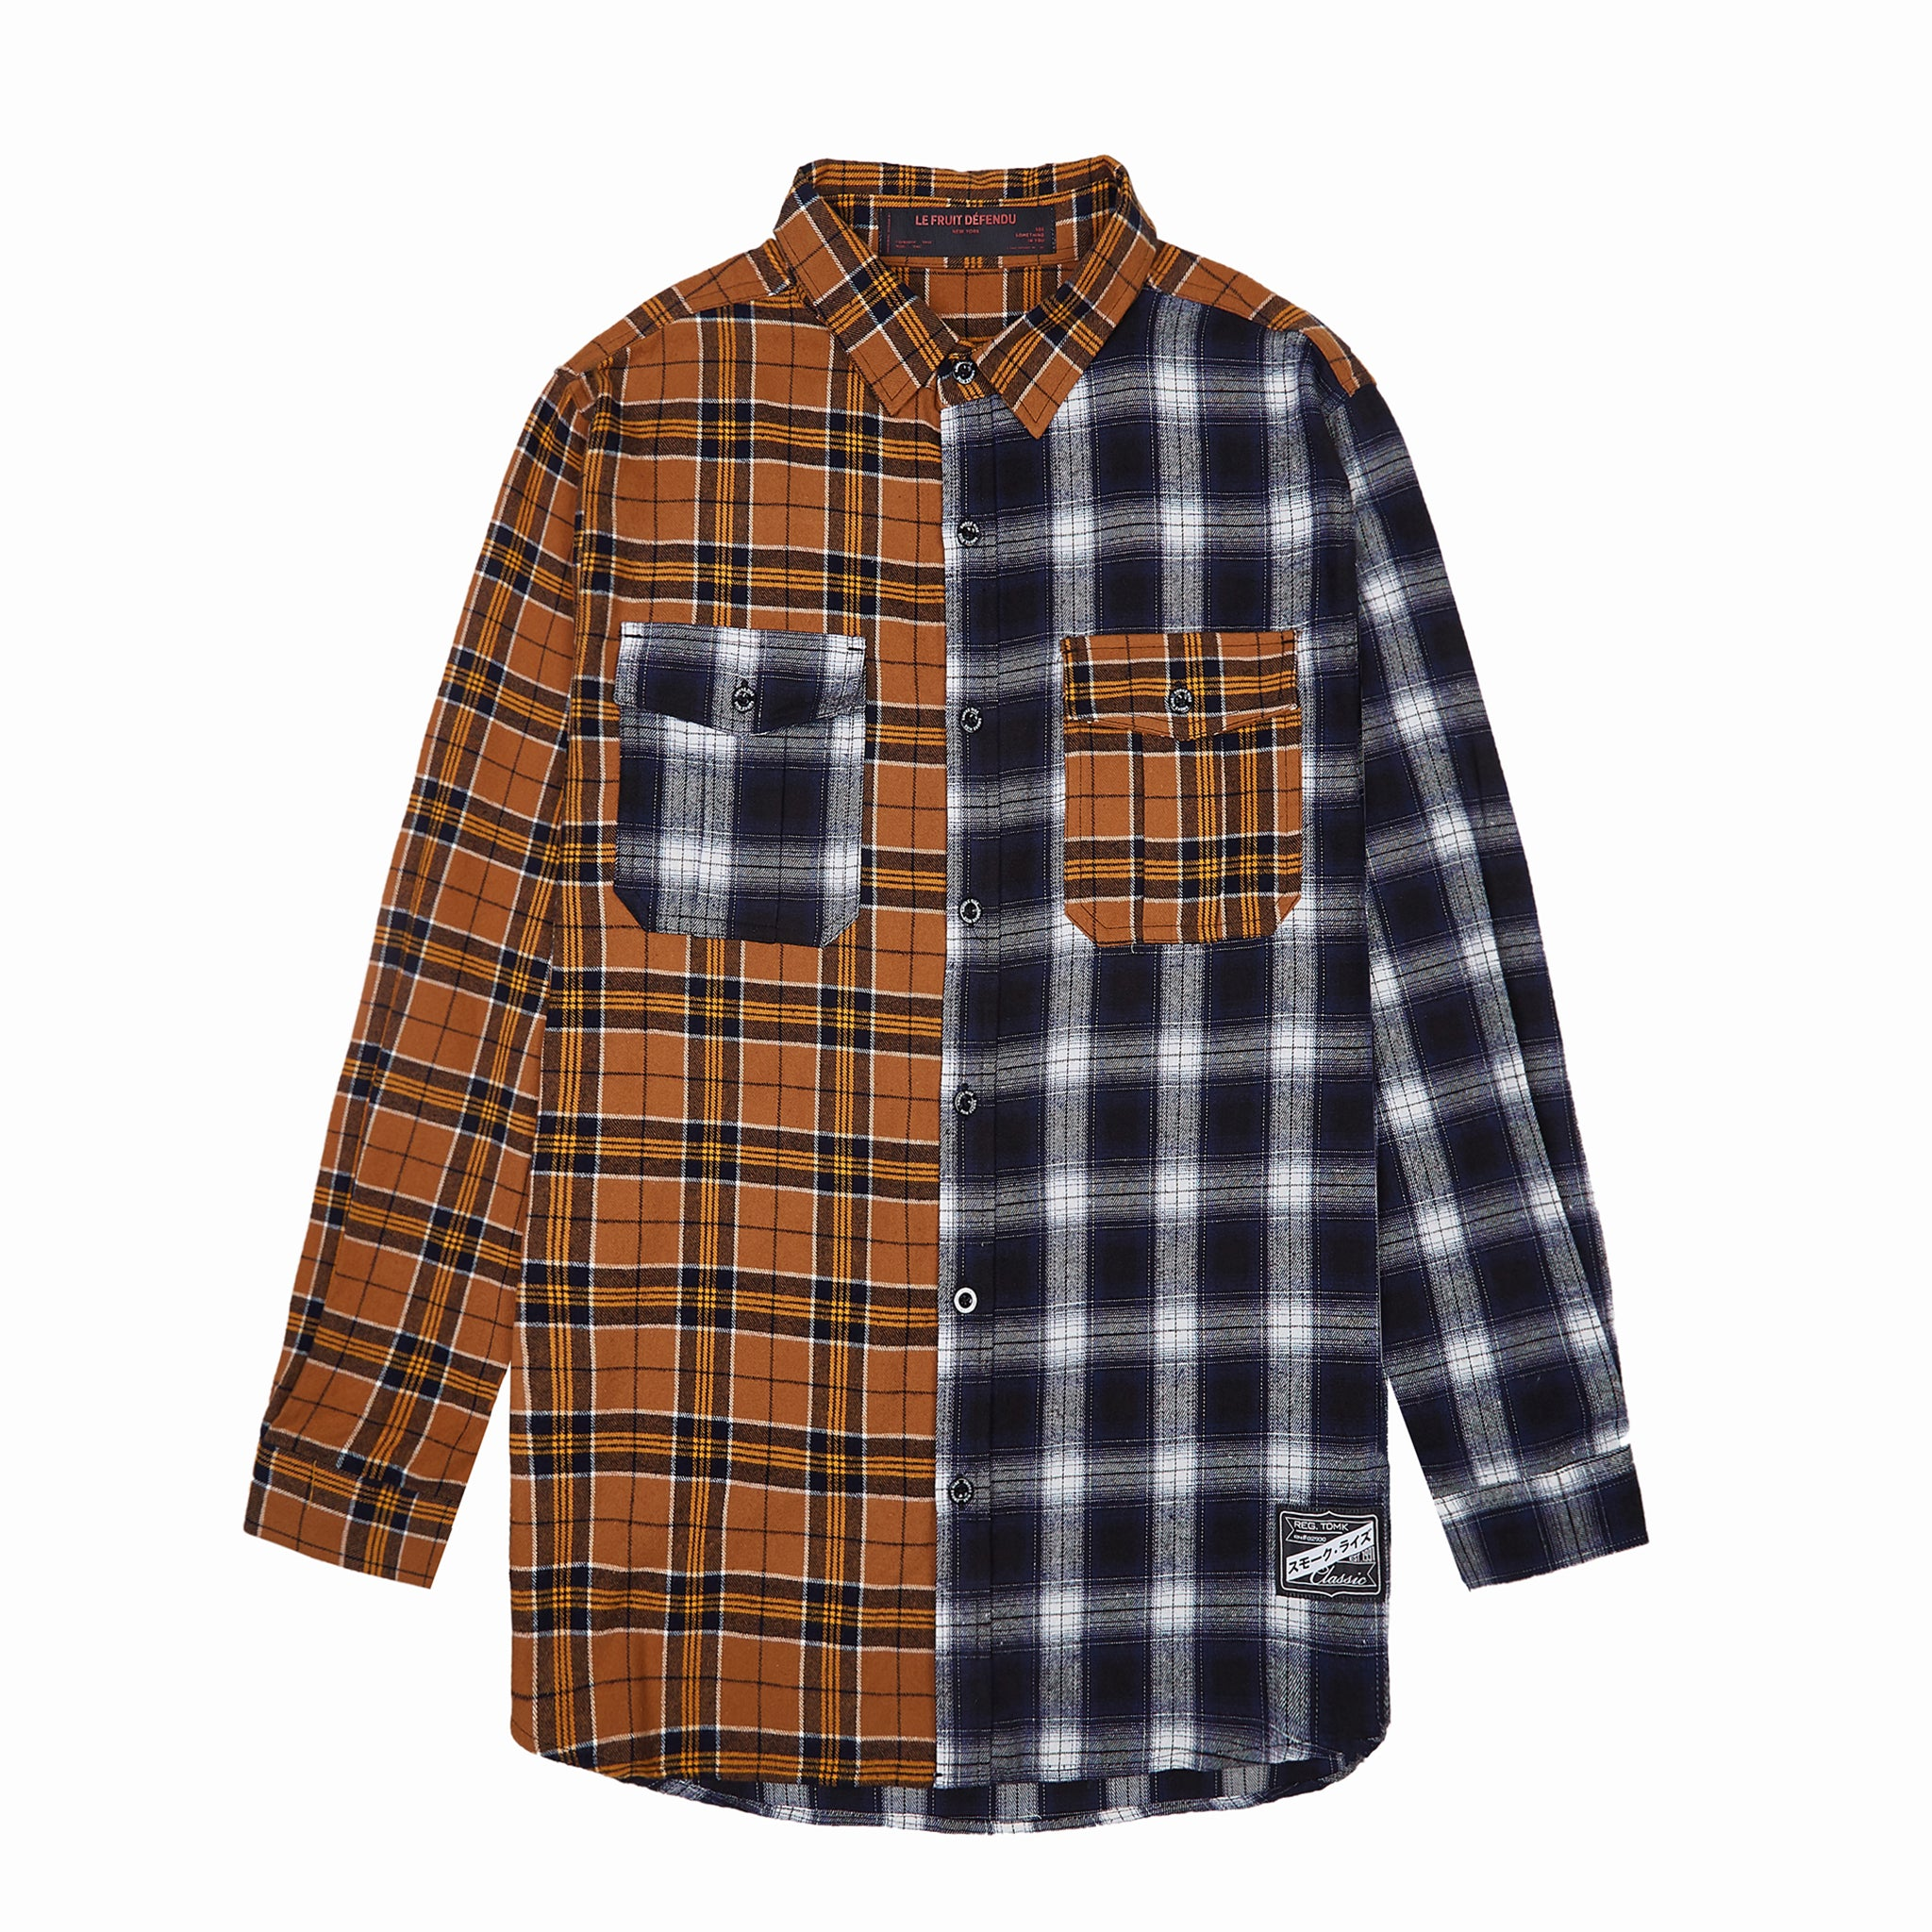 LFD Check vs Check shirt